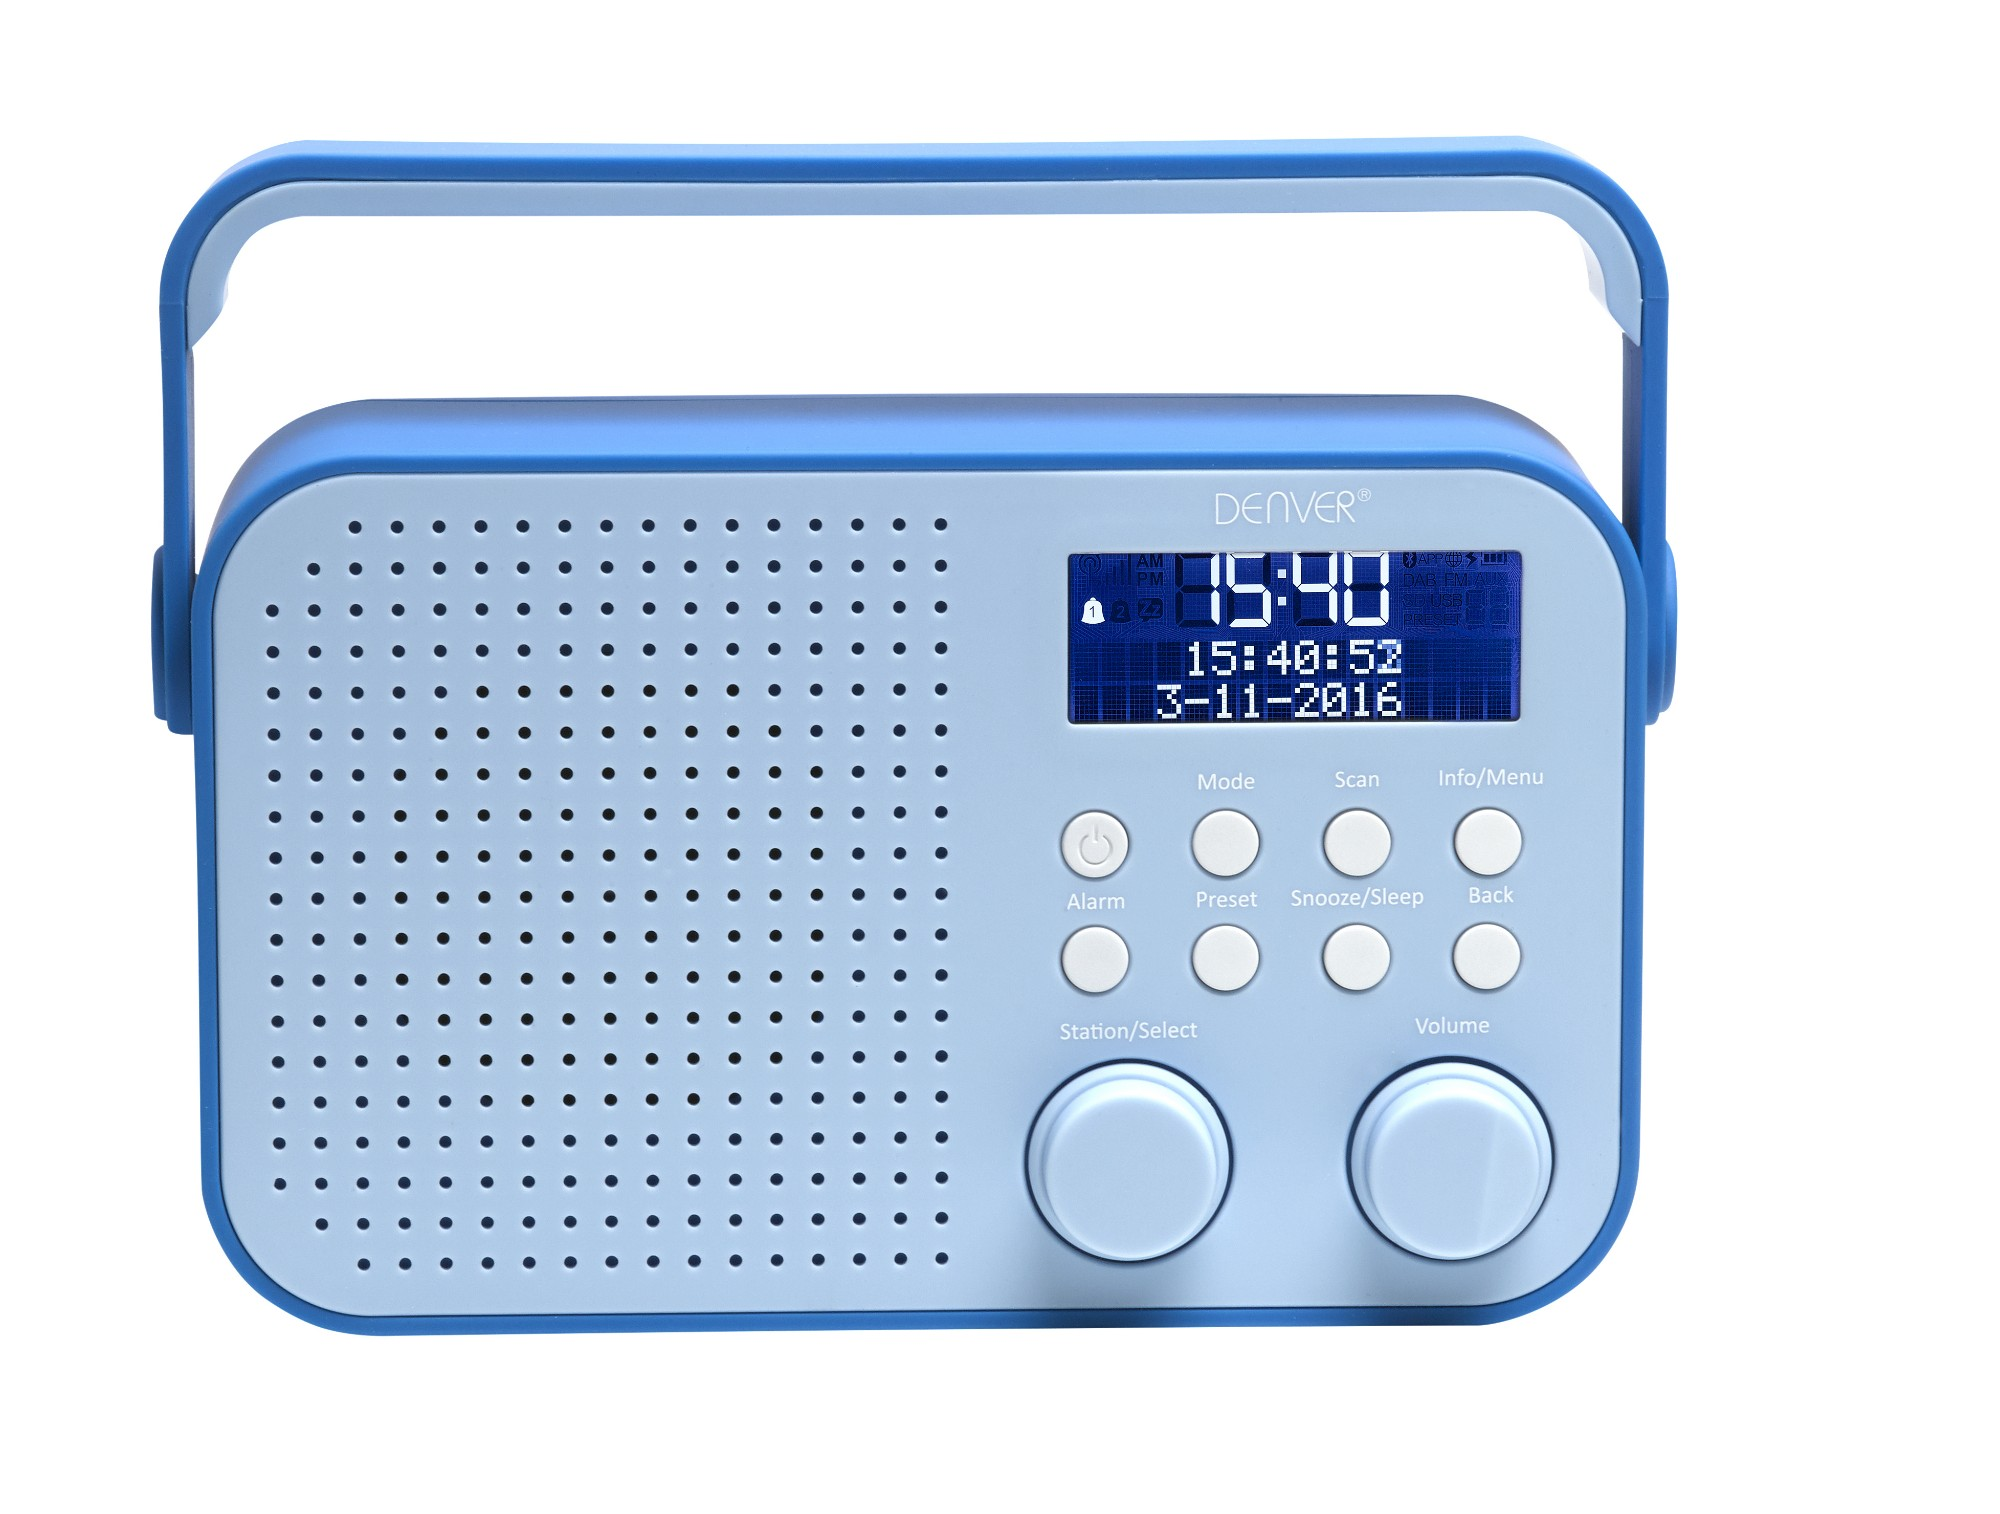 Denver Electronics DAB-39BLUE Portable Digital radio